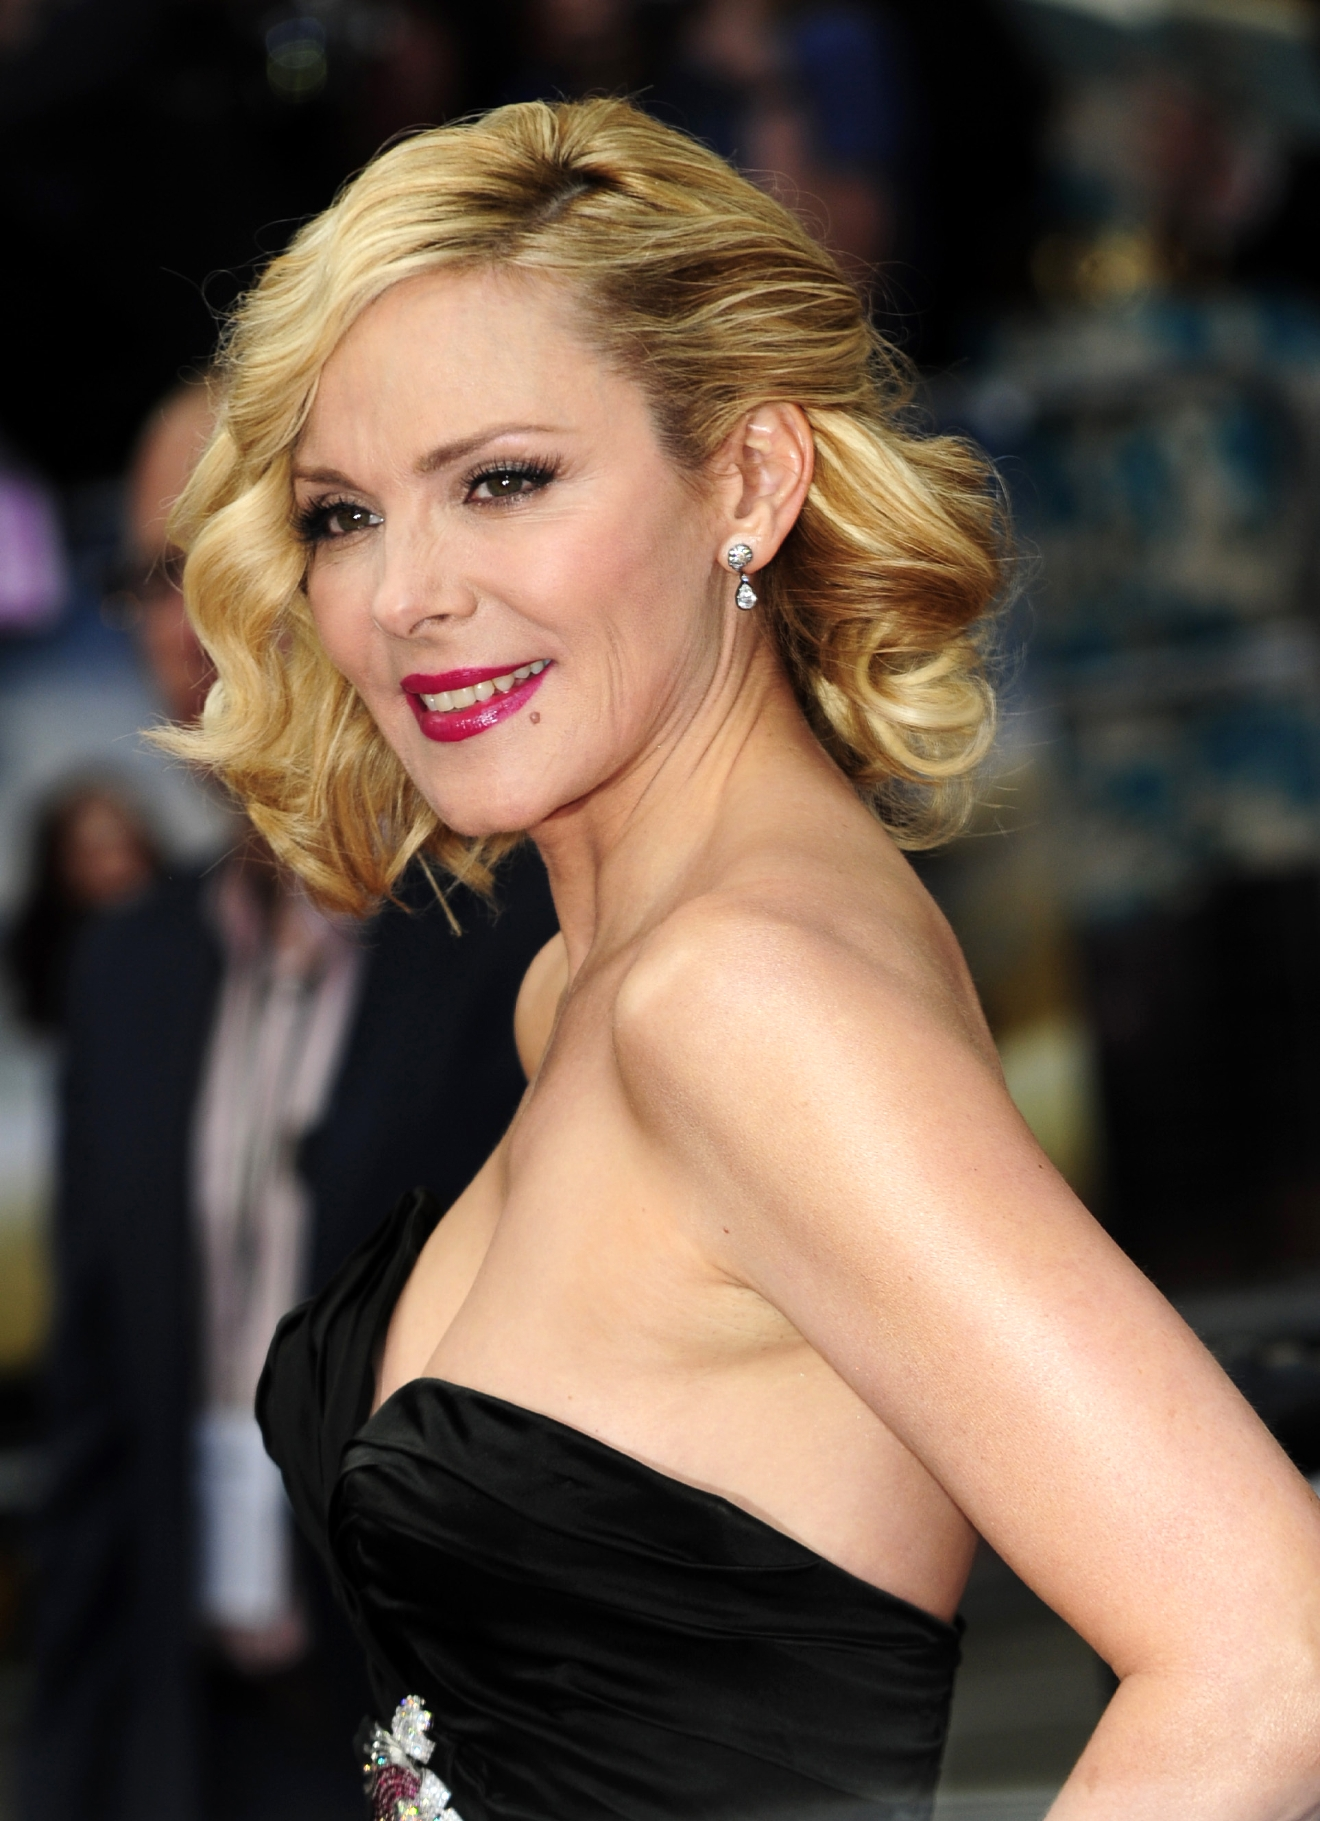 PHOTOS | Happy 60th, Kim Cattrall! | WOAI Kim Cattrall